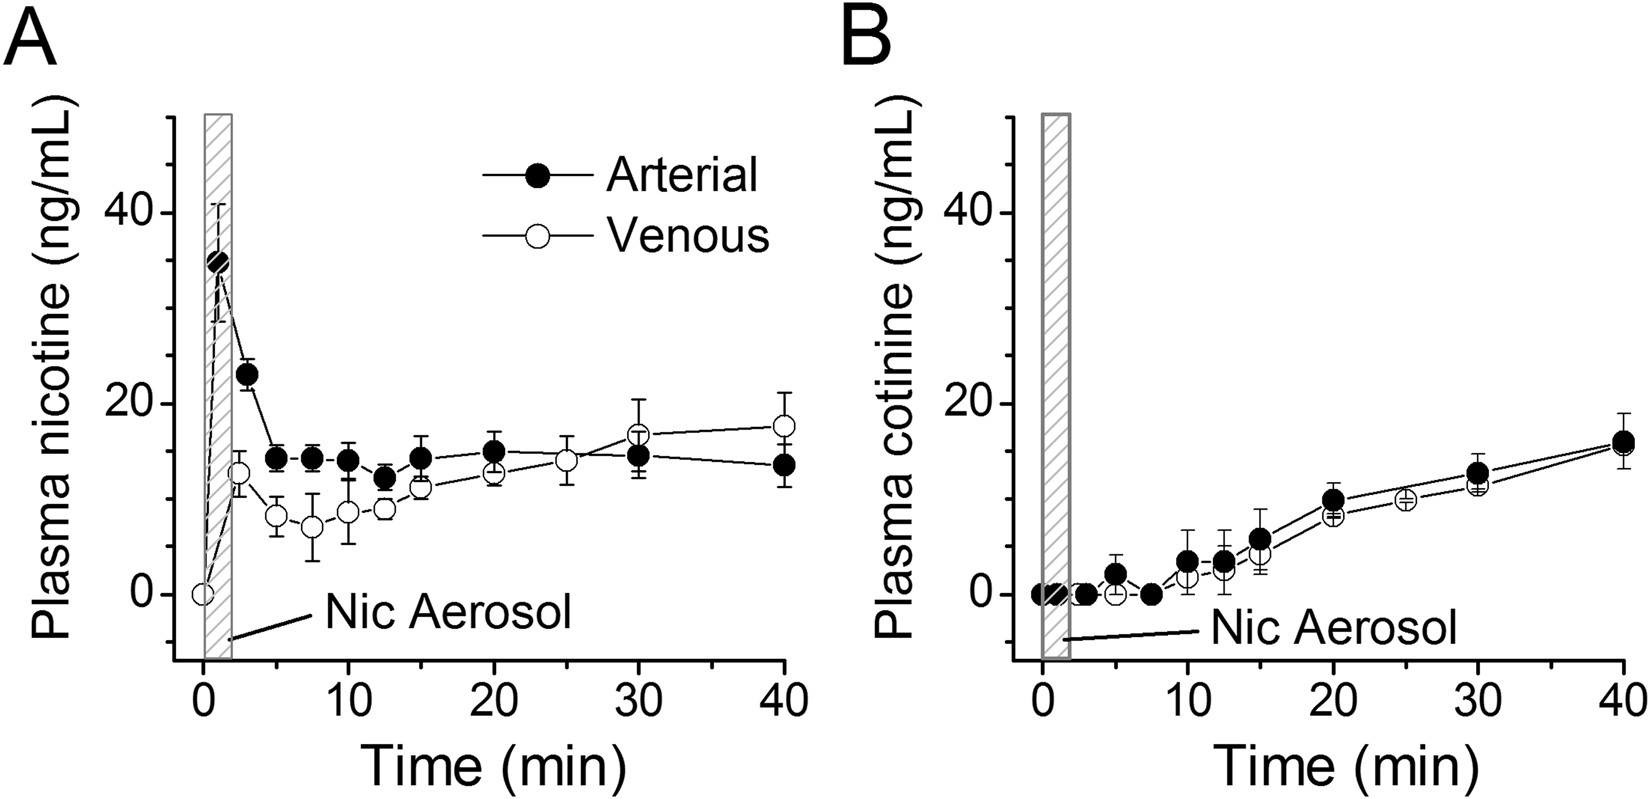 Inhaled Nicotine Equivalent To Cigarette Smoking Disrupts Systemic E Block Diagram And Uterine Hemodynamics Induces Cardiac Arrhythmia In Pregnant Rats Scientific